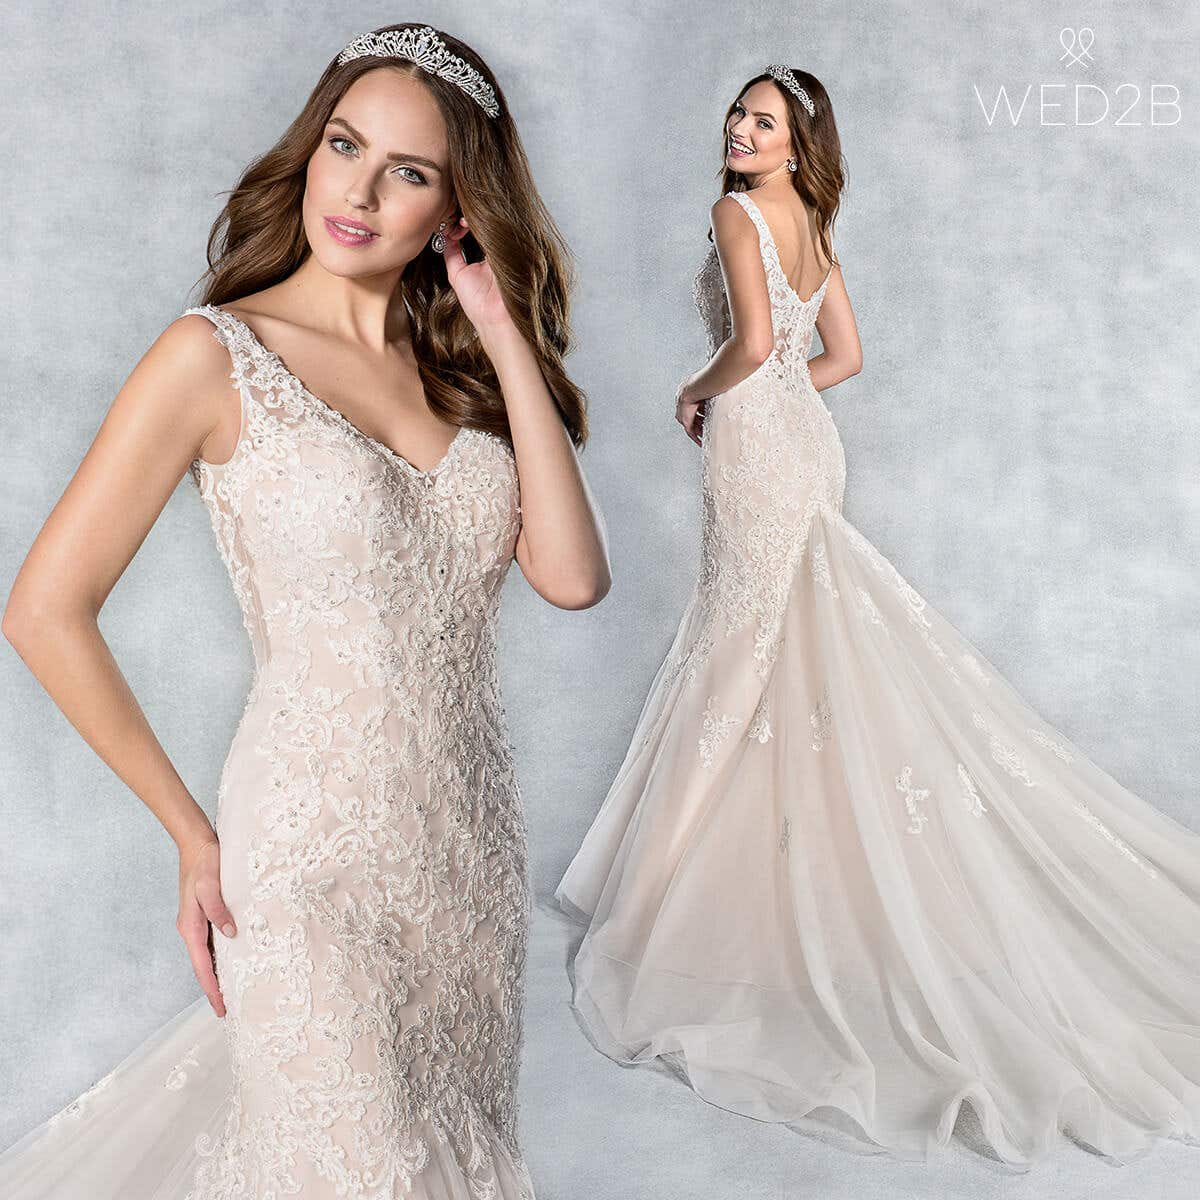 Wedding Gown Styles Guide: A Wedding Dress Style Guide For Tall Brides